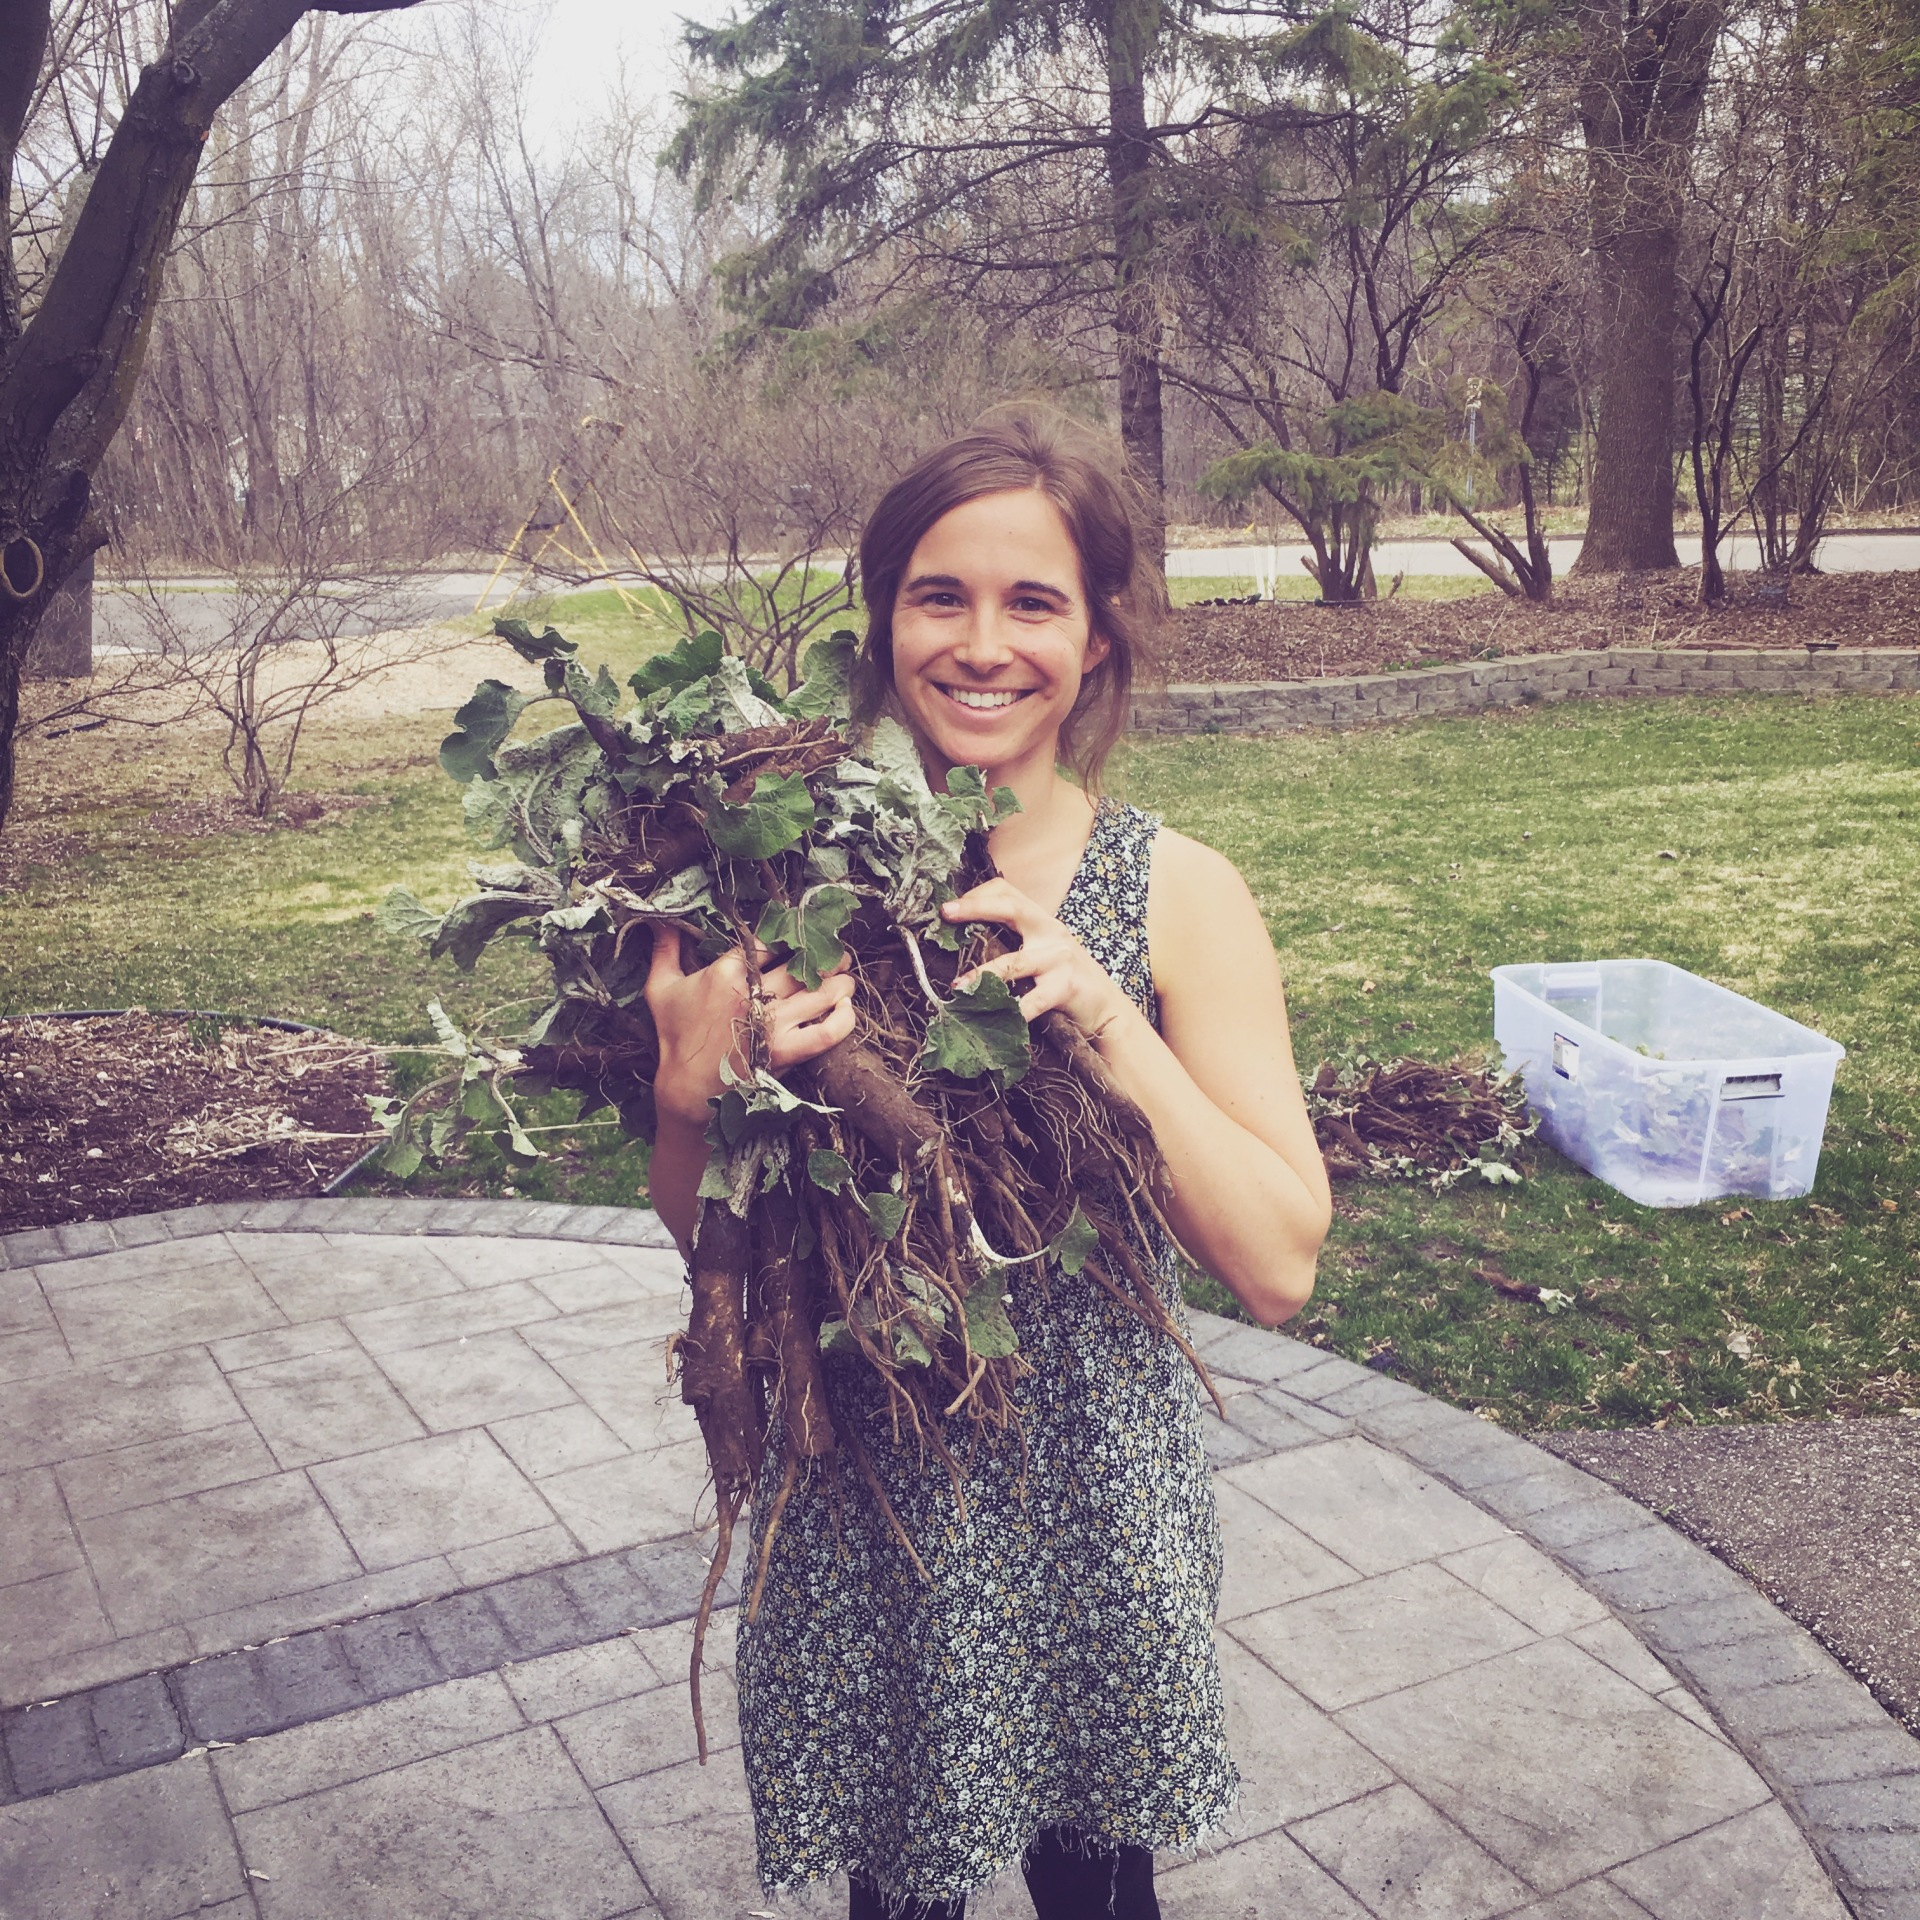 4/9/17: Anna with some of the Burdock Harvest